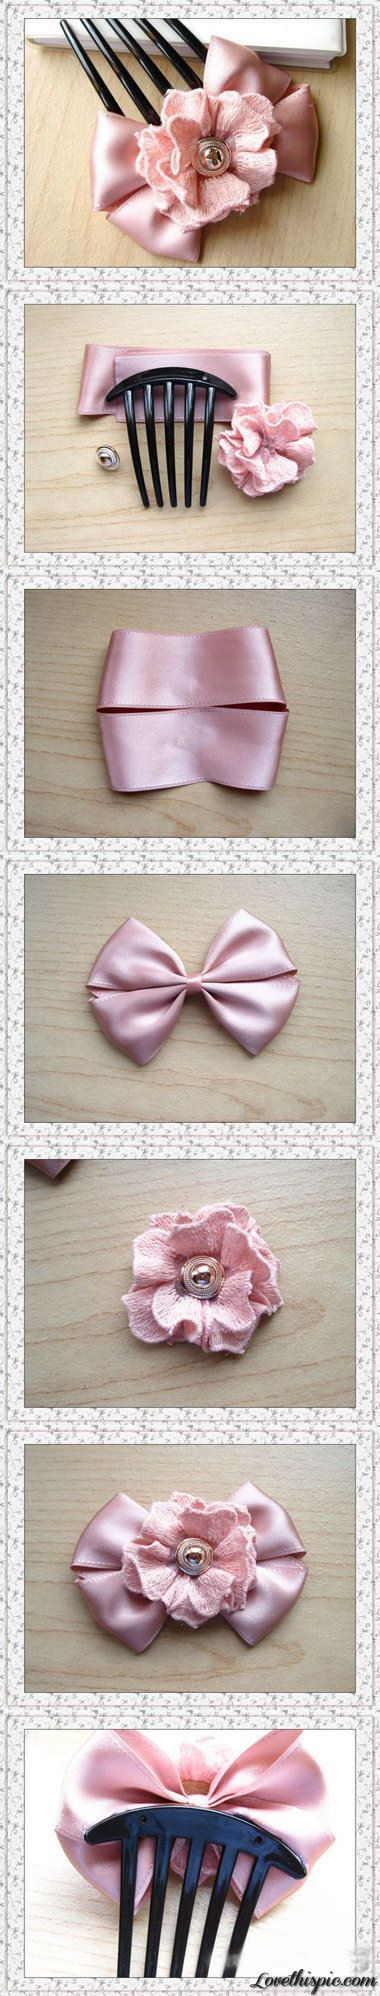 Diy Hair Bow diy crafts home made easy